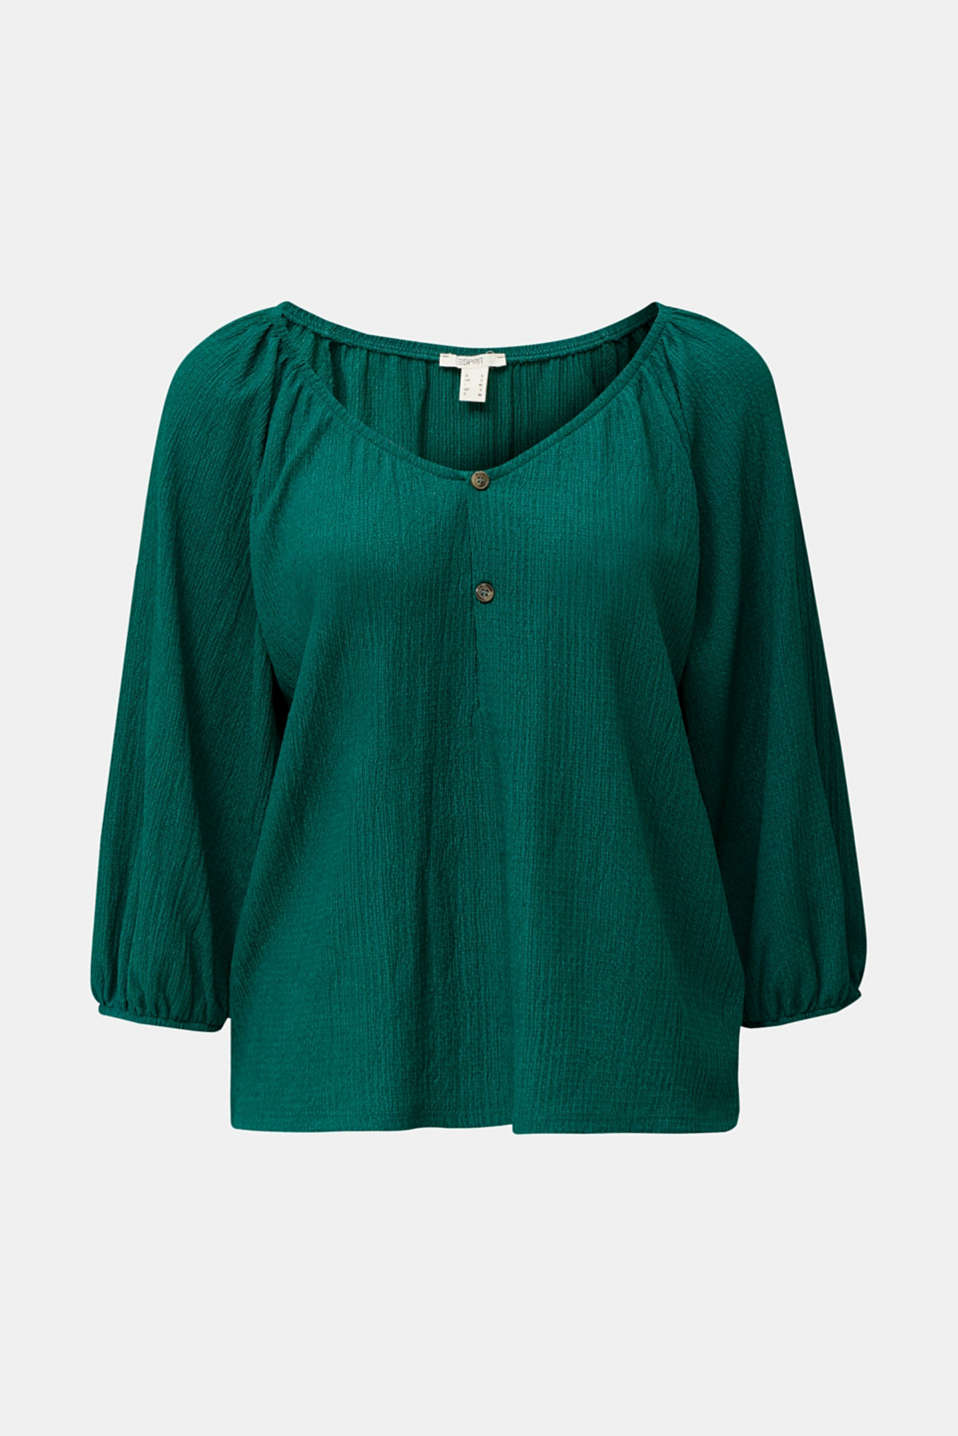 Textured blouse top, recycled, TEAL GREEN, detail image number 6